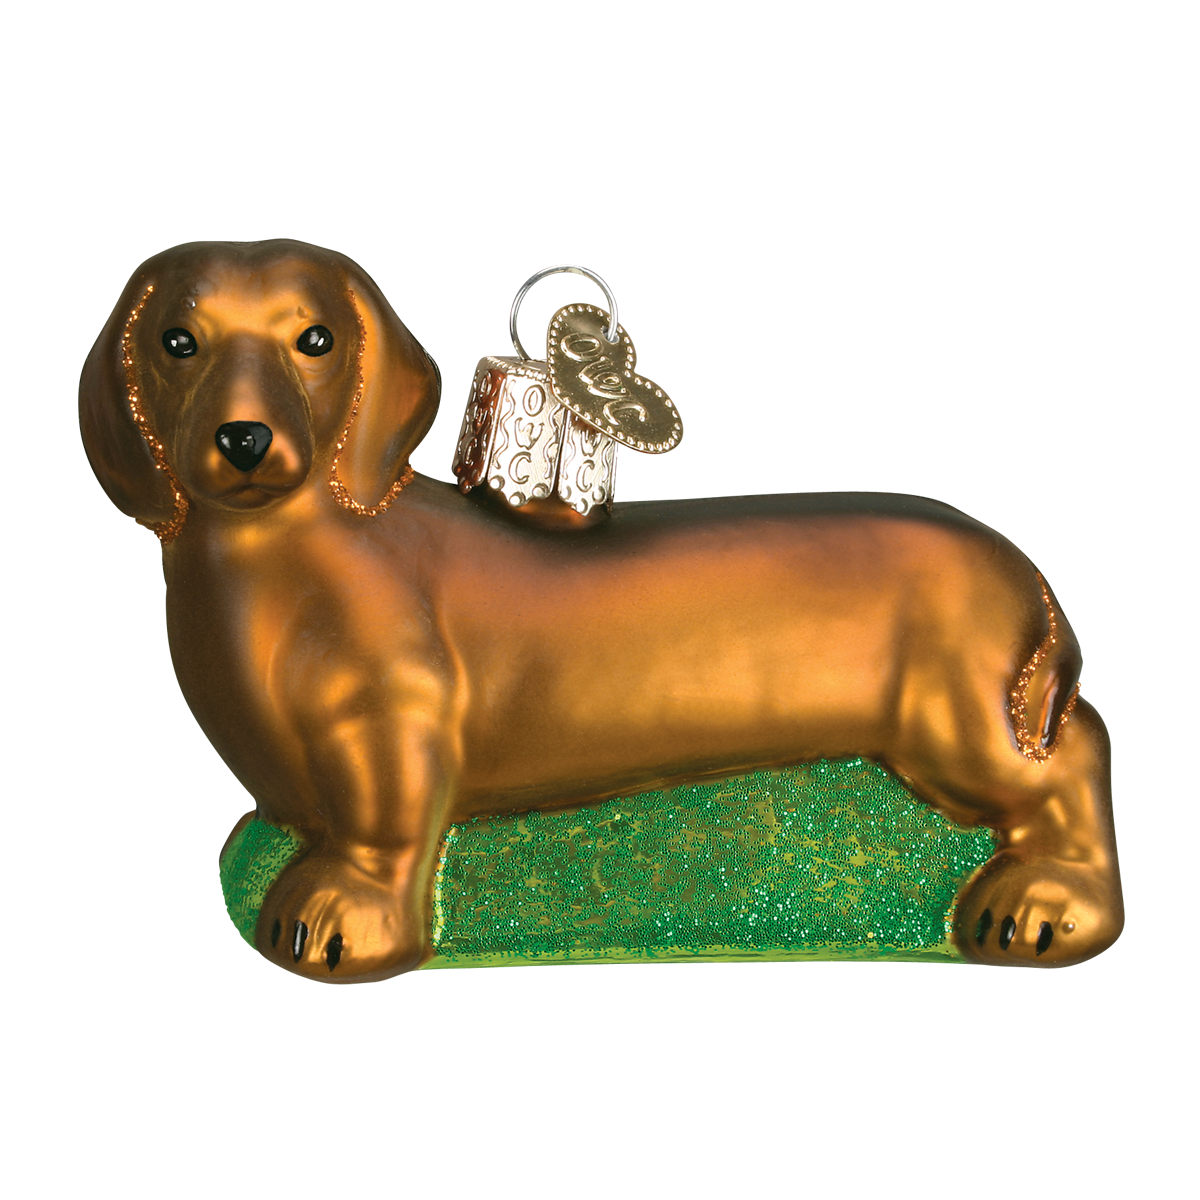 Old World Dachshund Glass Ornament - Putti Christmas